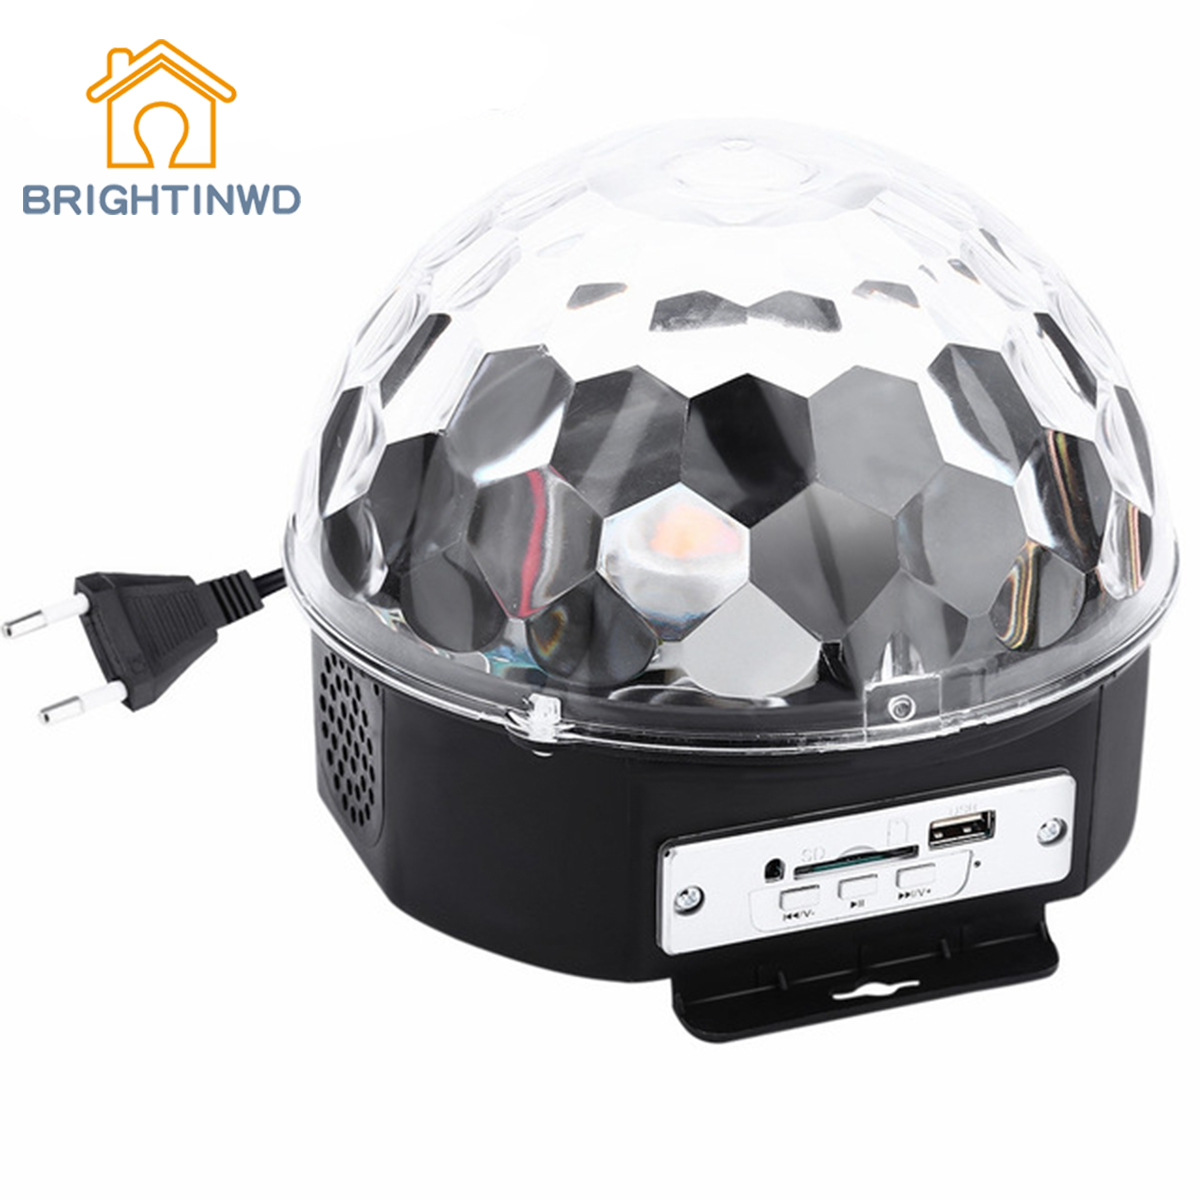 BRIGHTINWD RGB LED Magic Crystal Ball Lamp Disco Light Laser Wedding Party Lamp 6 LEDs RGB Premium Sound Control Stage Light new d19 sound activated 5w 48 led rgb crystal magic sunflower light white